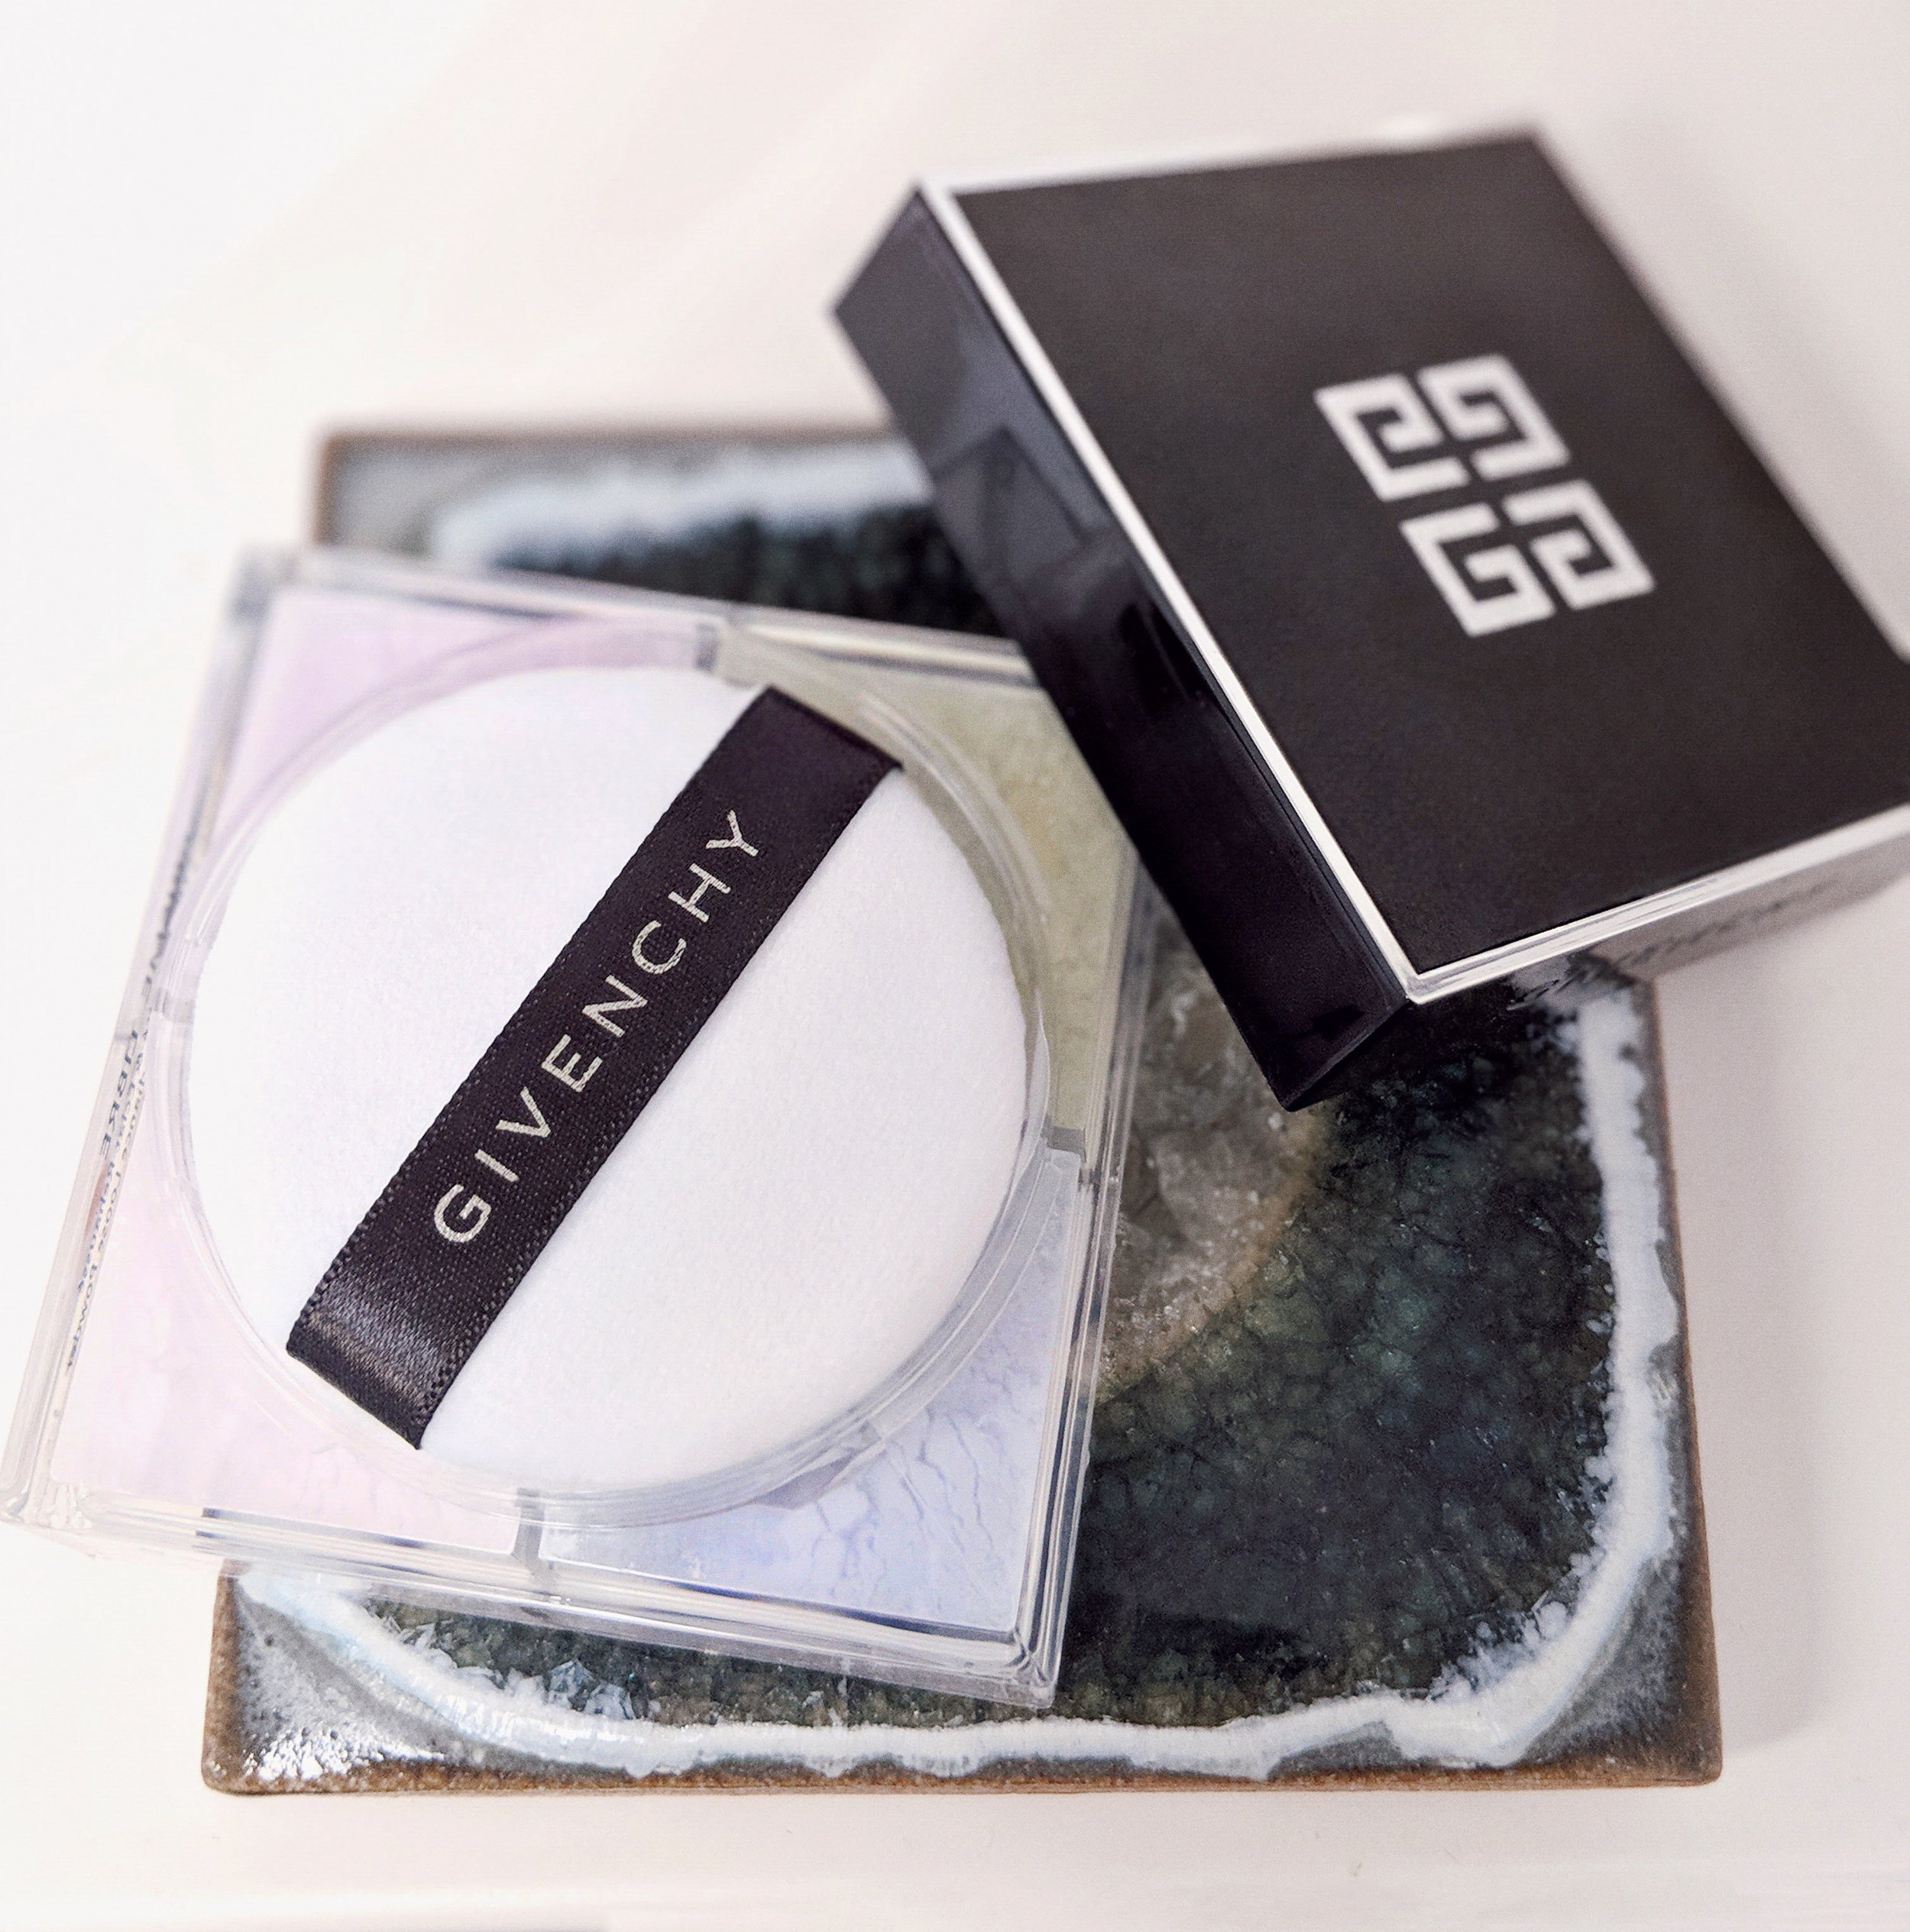 Givenchy loose powder